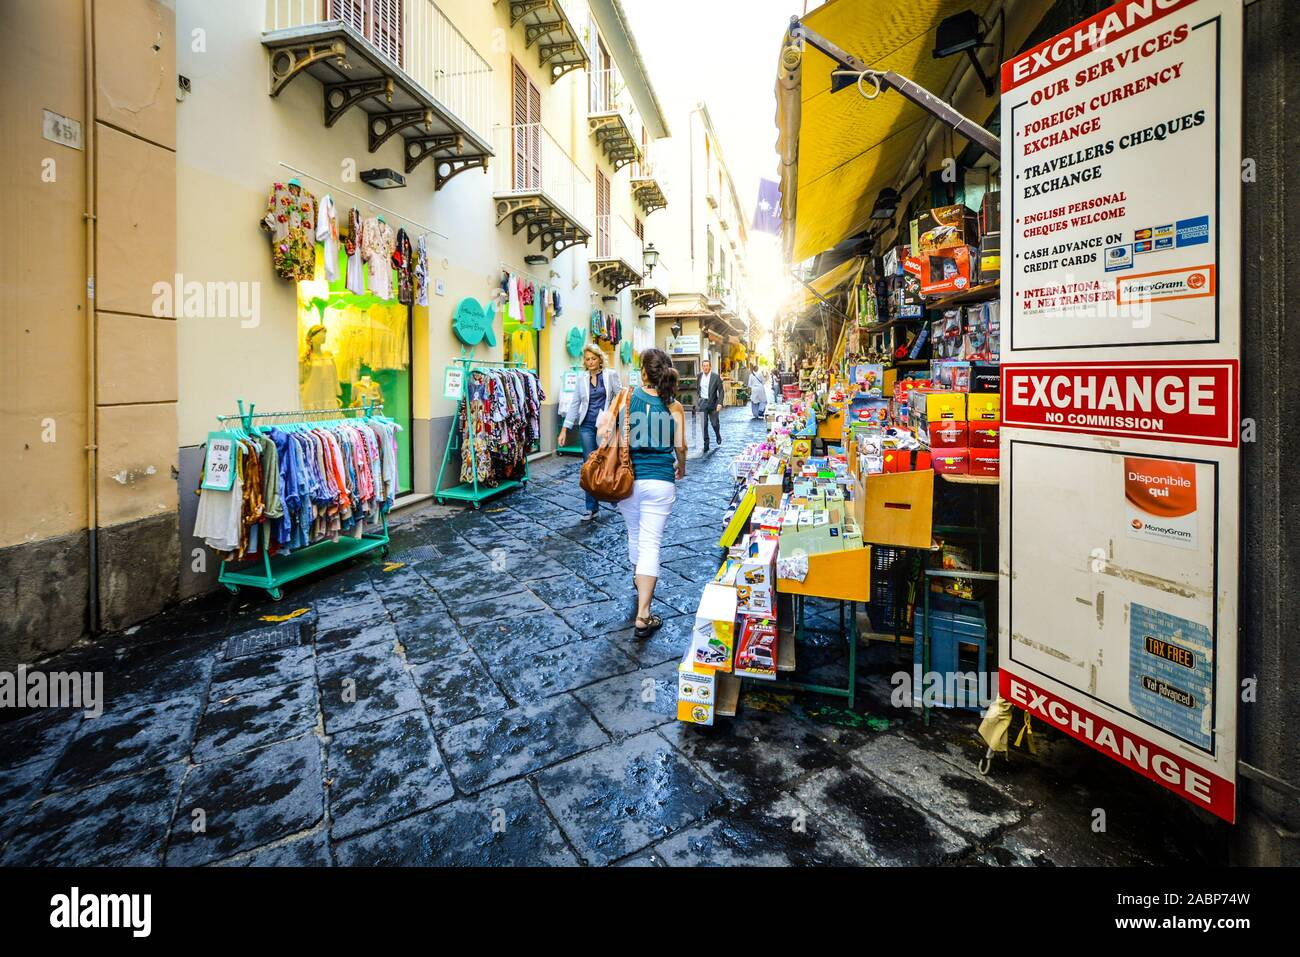 Tourist souvenir shopping in a back alley in the resort town of Sorrento Italy on the Amalfi Coast Stock Photo